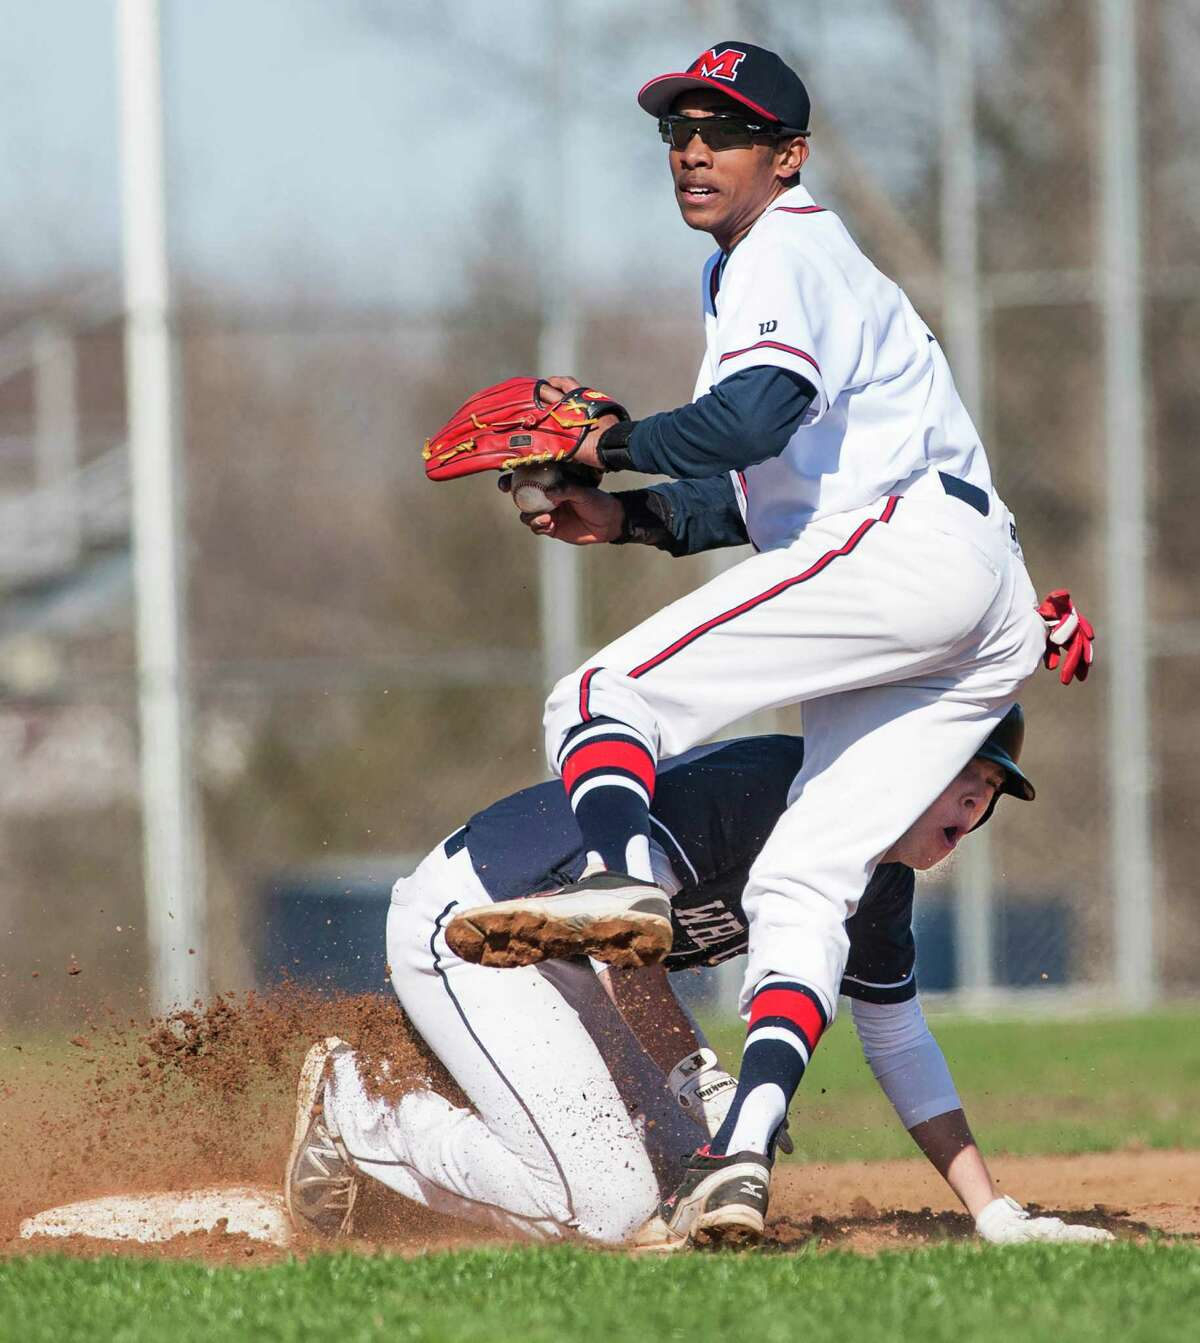 Staples high school's Nathan Panzer runs into Brien McMahon high school shortstop Edwin Owolo while sliding into second base during a boy's baseball game played at Brien McMahon high school, Norwalk, CT on Wednesday, April, 16th, 2014.